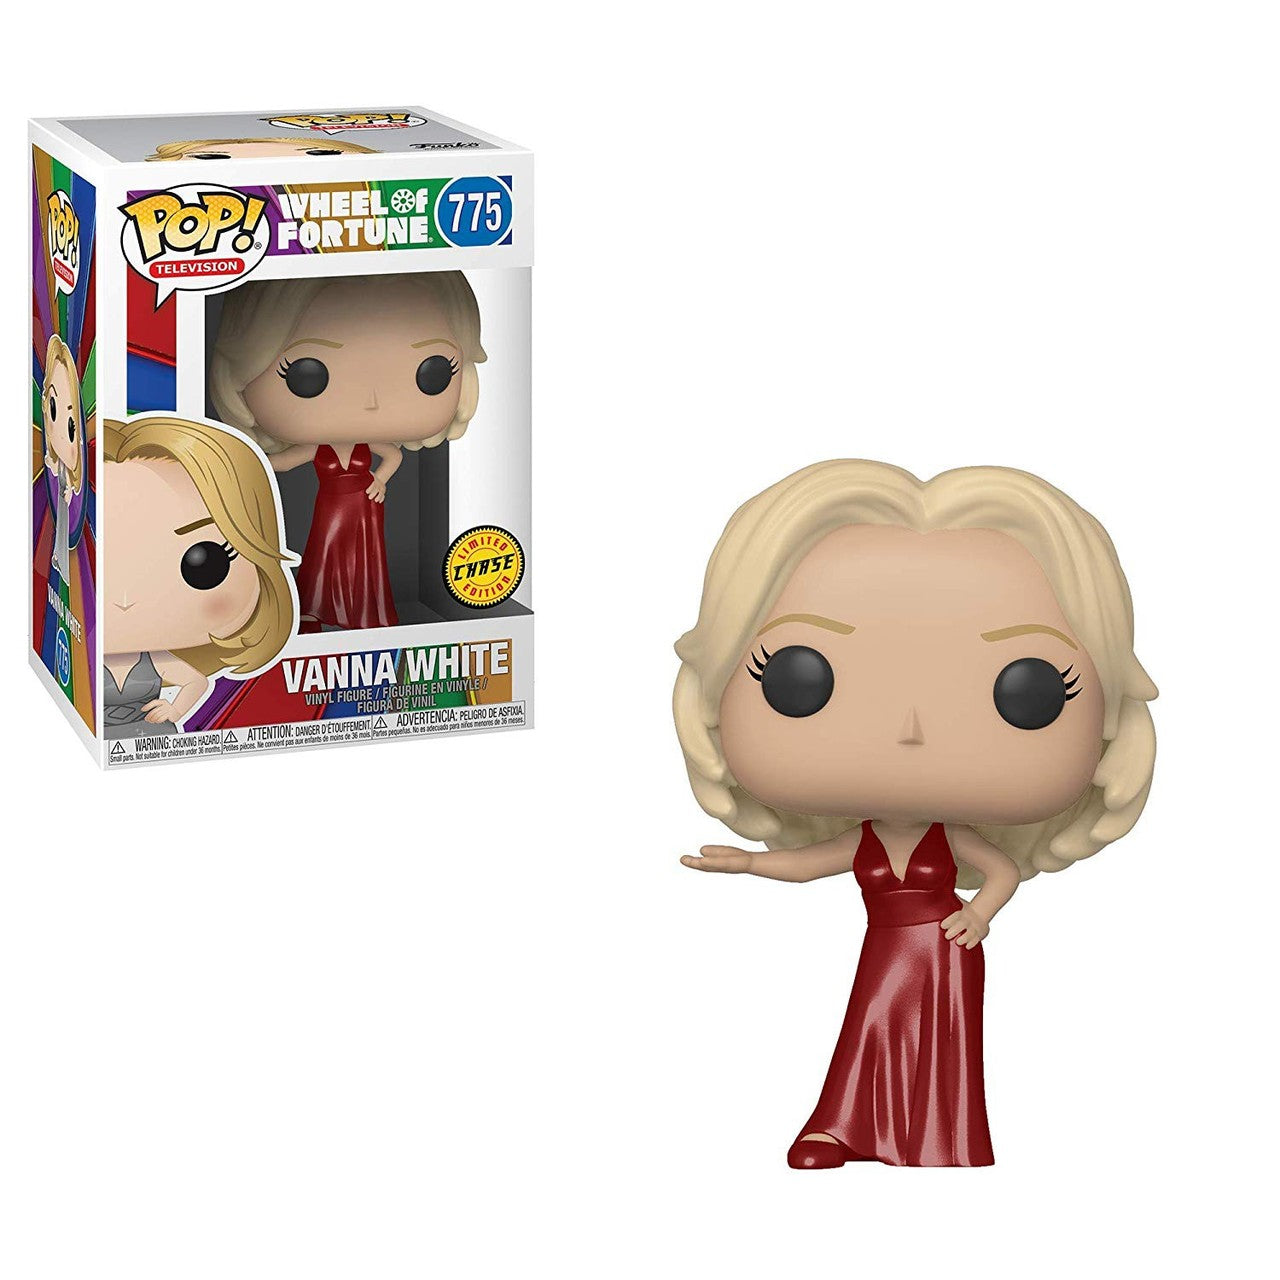 Wheel of Fortune Pop! Vinyl Figure Vanna White (Chase) [775] - Fugitive Toys